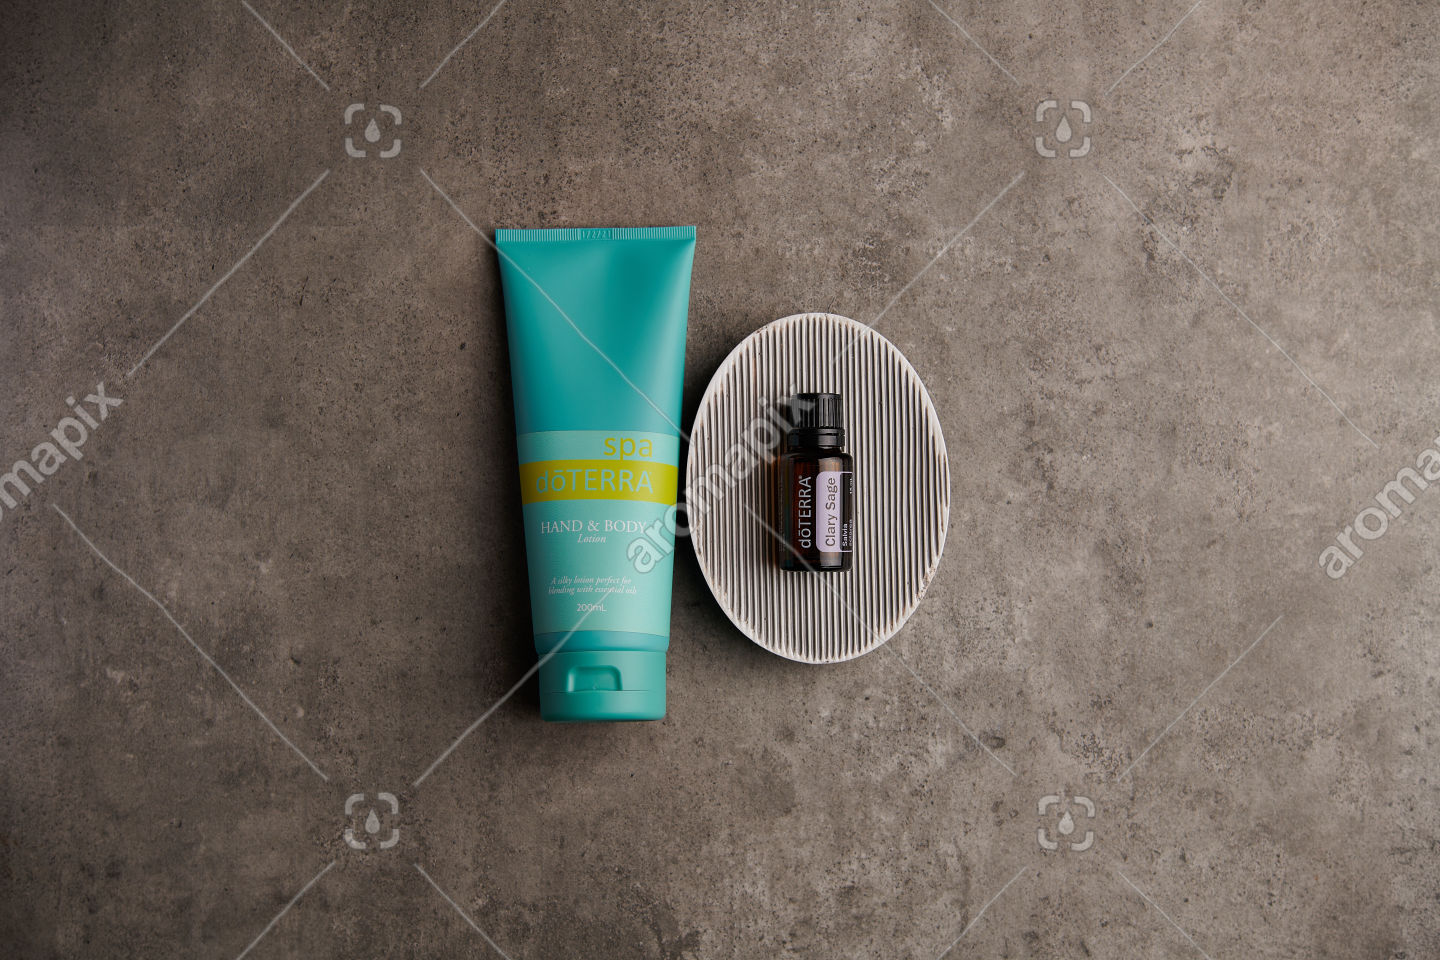 doTERRA Spa Hand and Body Lotion and Clary Sage essential oil on stone